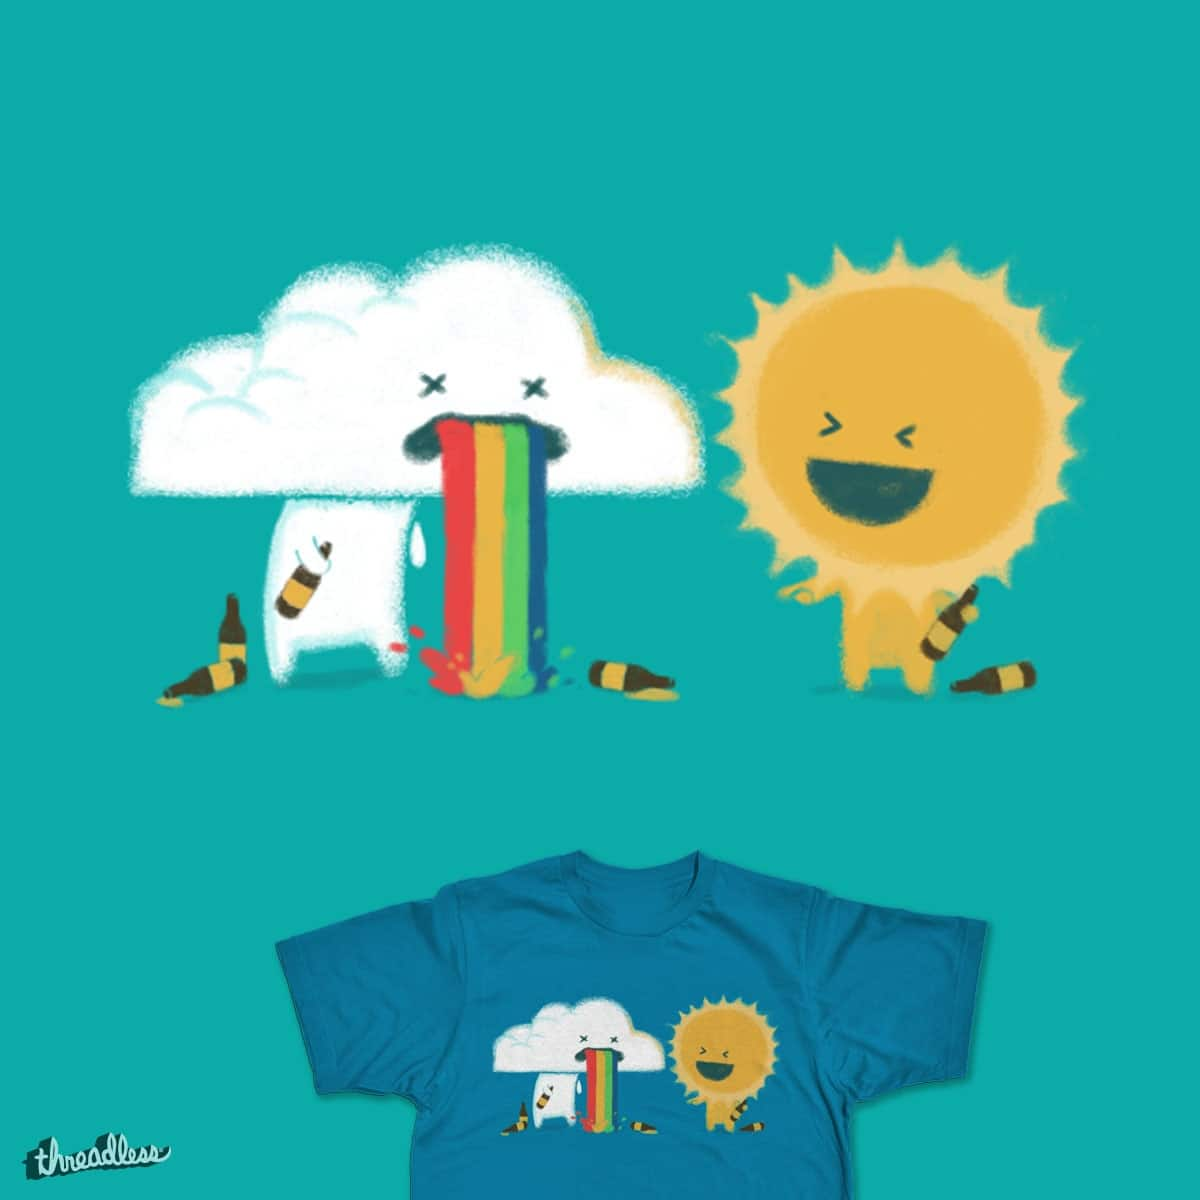 Such Friend by radiomode on Threadless